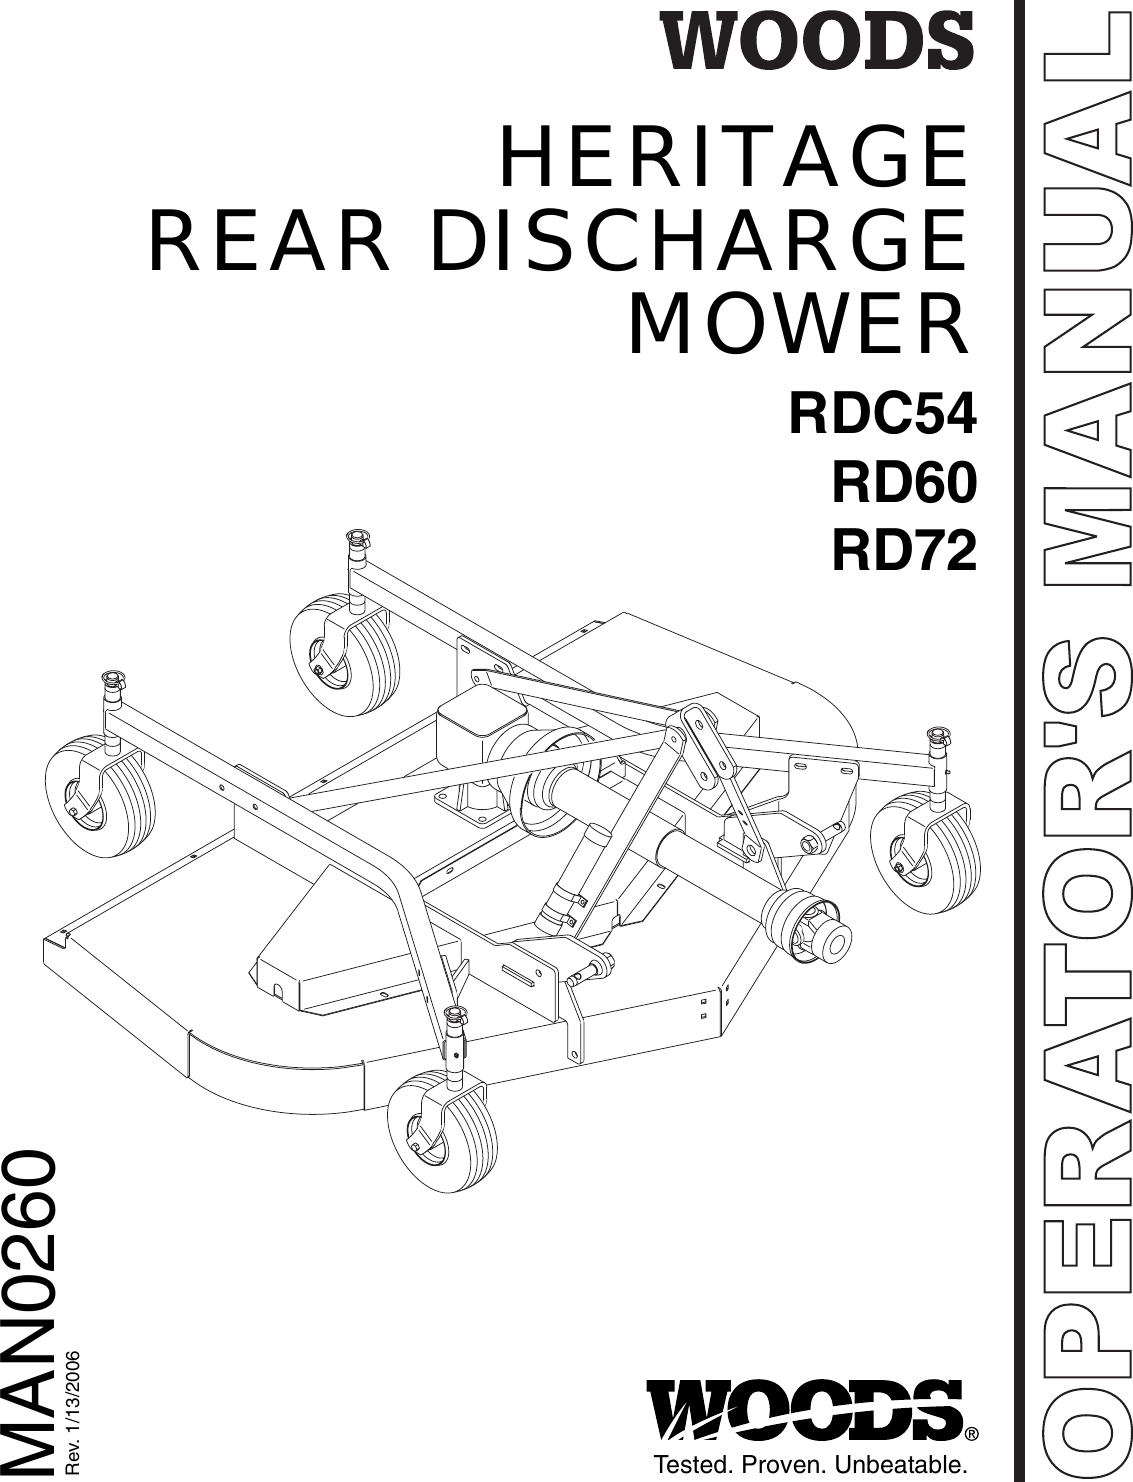 Woods Equipment Rdc54 Rd60 Rd72 Users Manual Heritage Rear